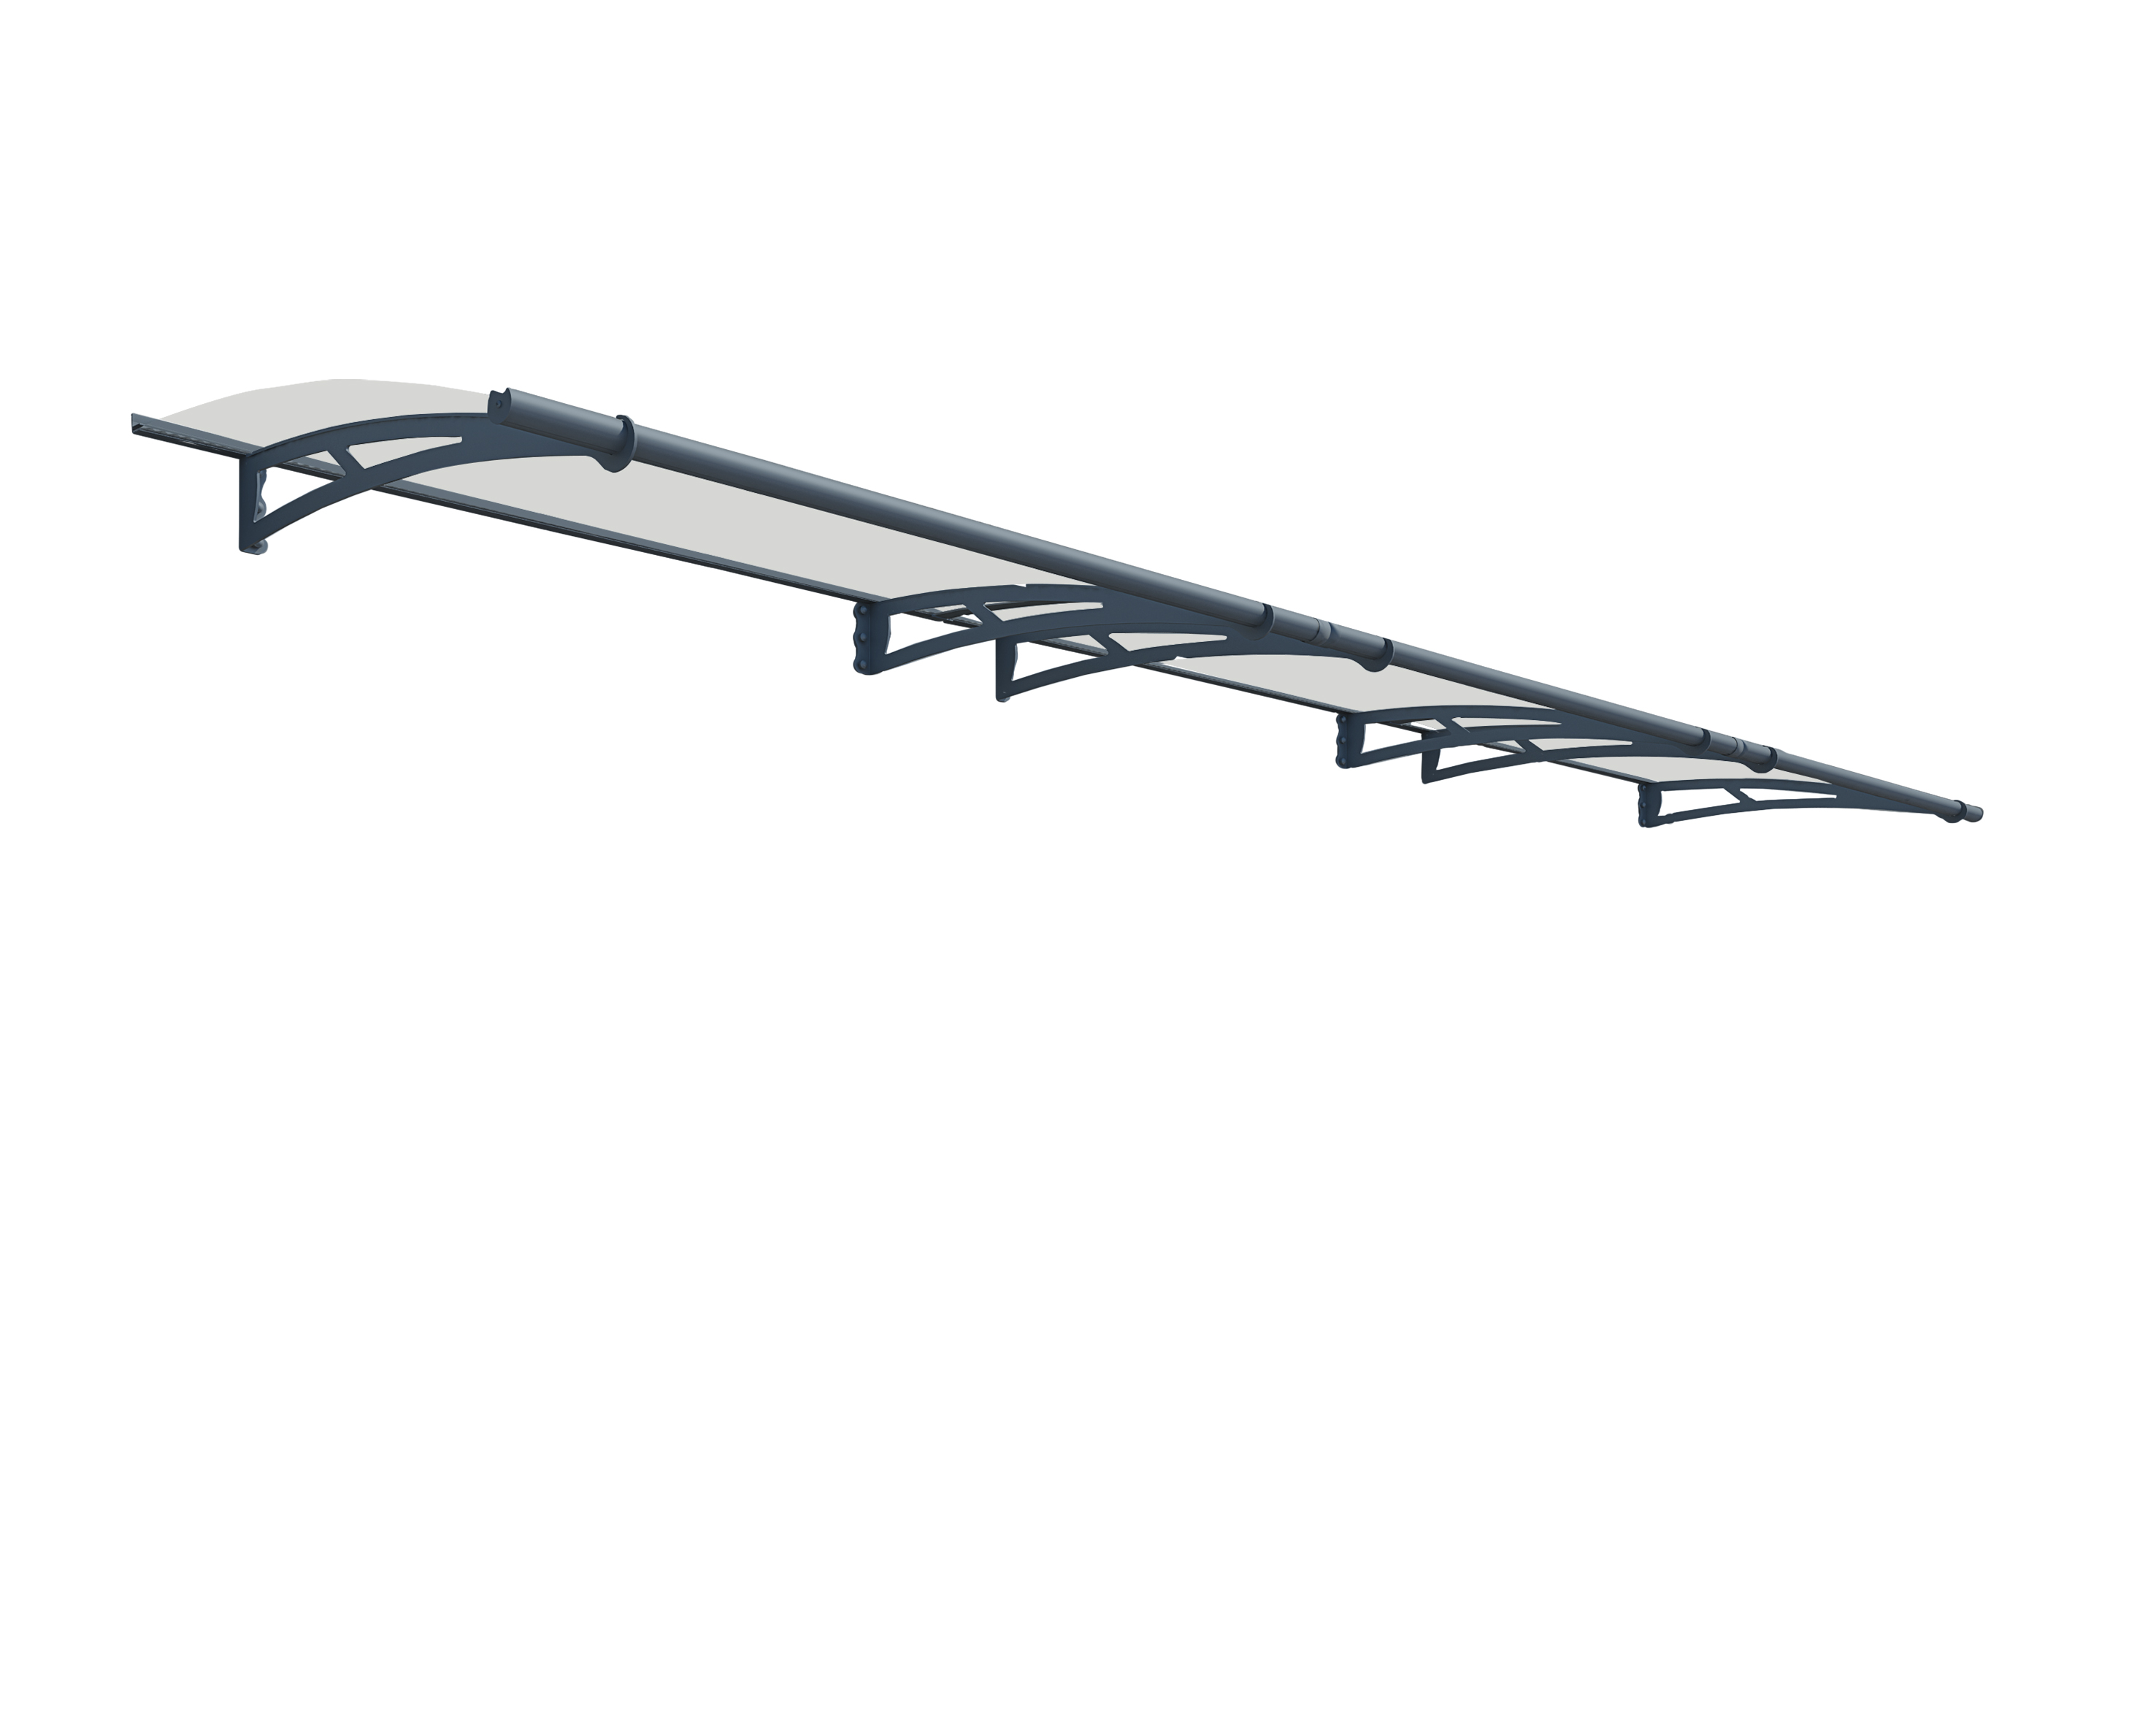 Buy Aquila Door Canopy- 4500mm (W) x 920mm (P) online today